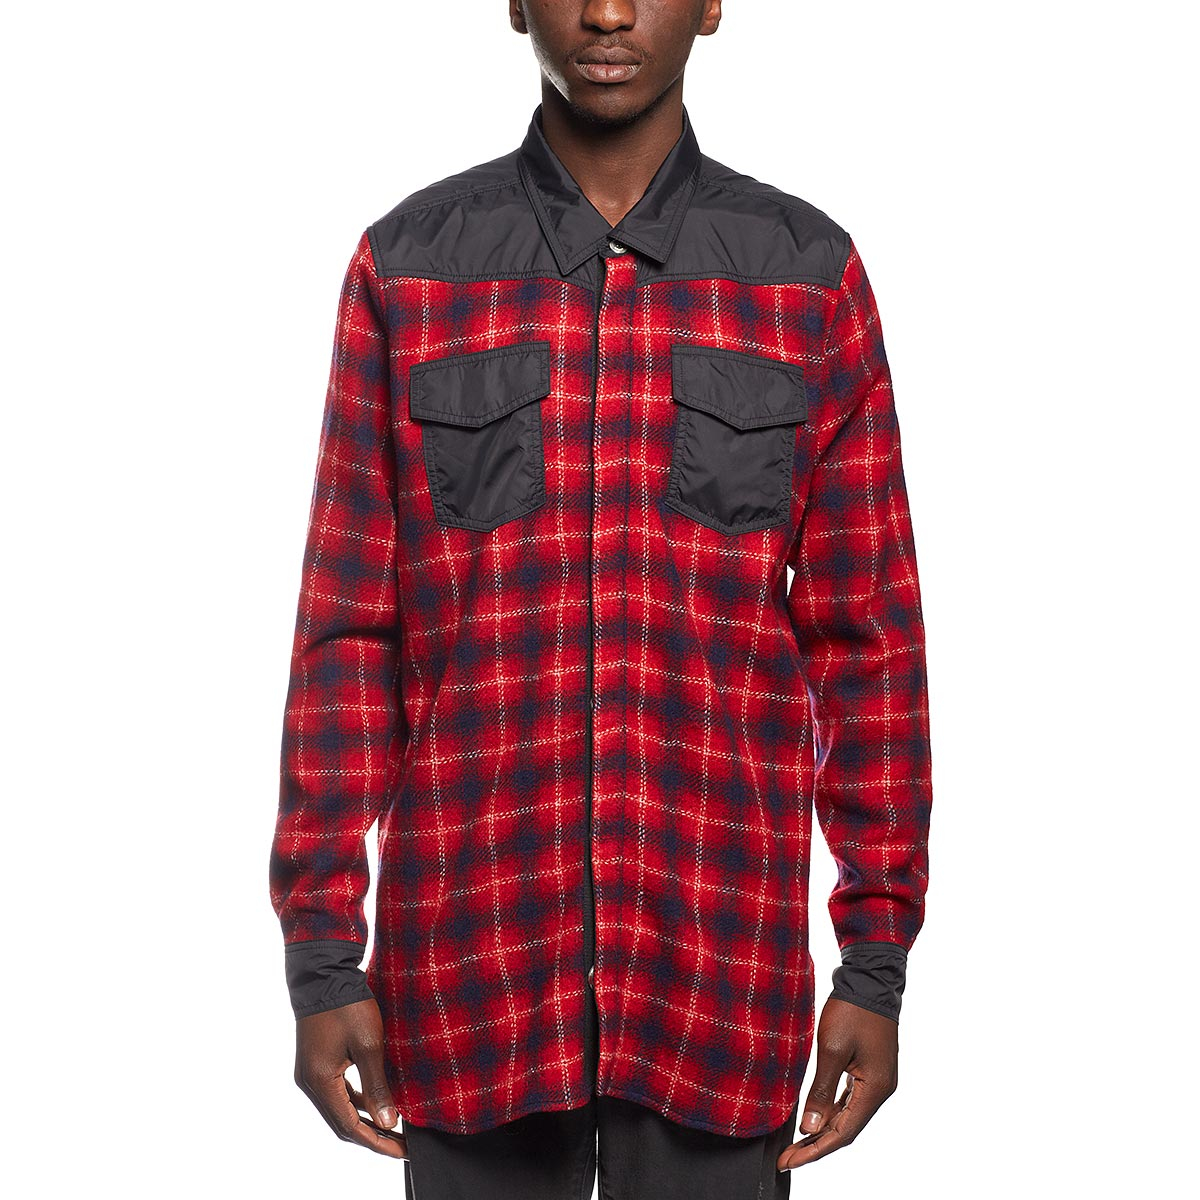 Off white c o virgil abloh flannel shirt in red for men lyst for White flannel shirt mens